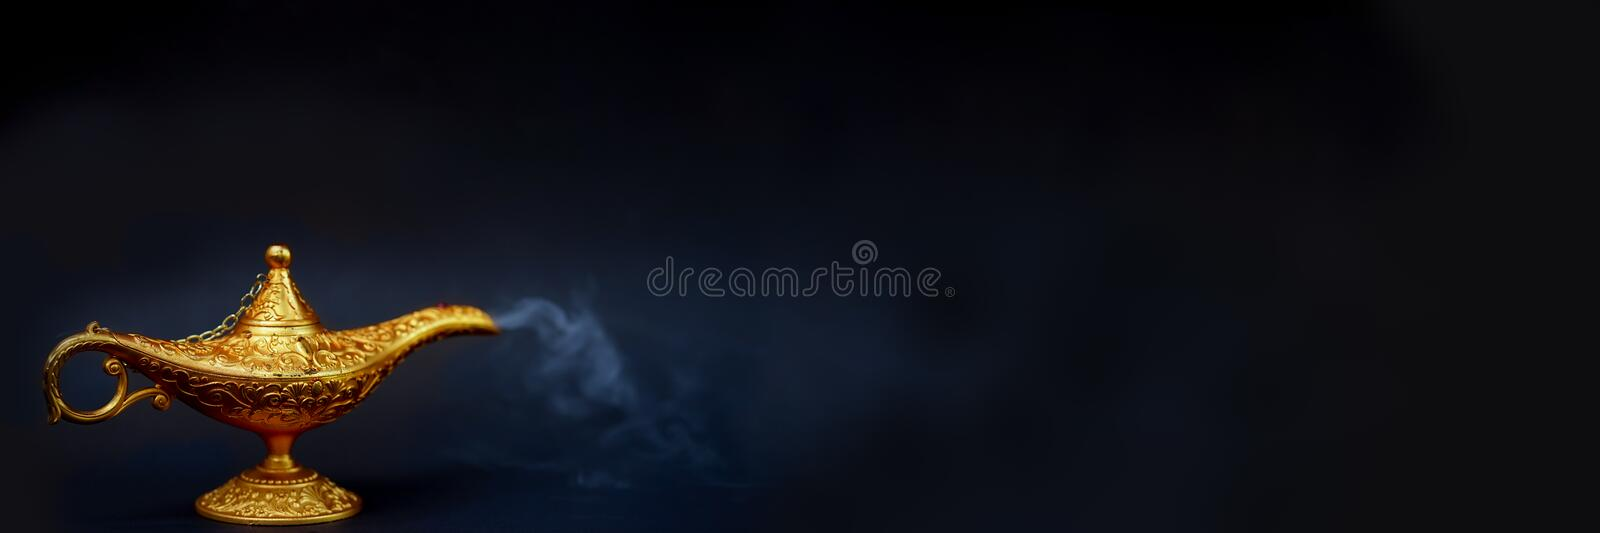 Magic lamp. A Vintage magical lamp and smoke coming out on the black background, website banner size royalty free stock photos